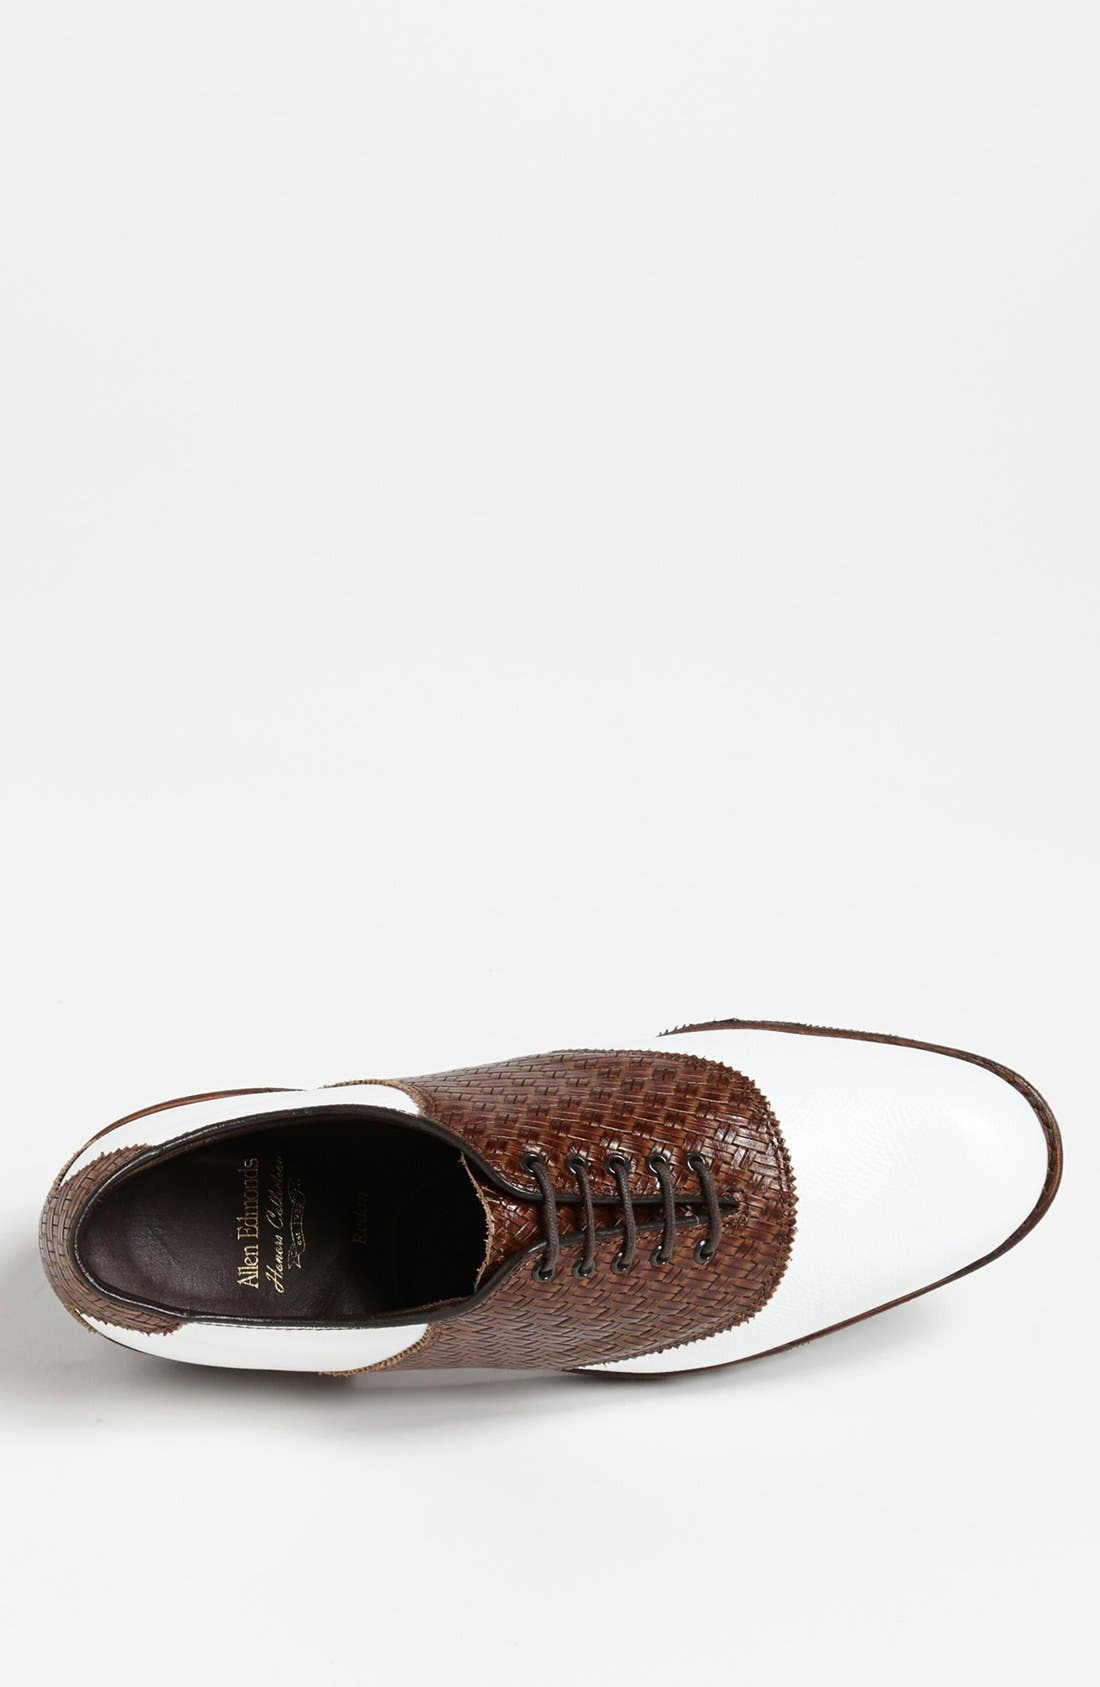 Alternate Image 3  - Allen Edmonds 'Redan' Golf Shoe (Men)